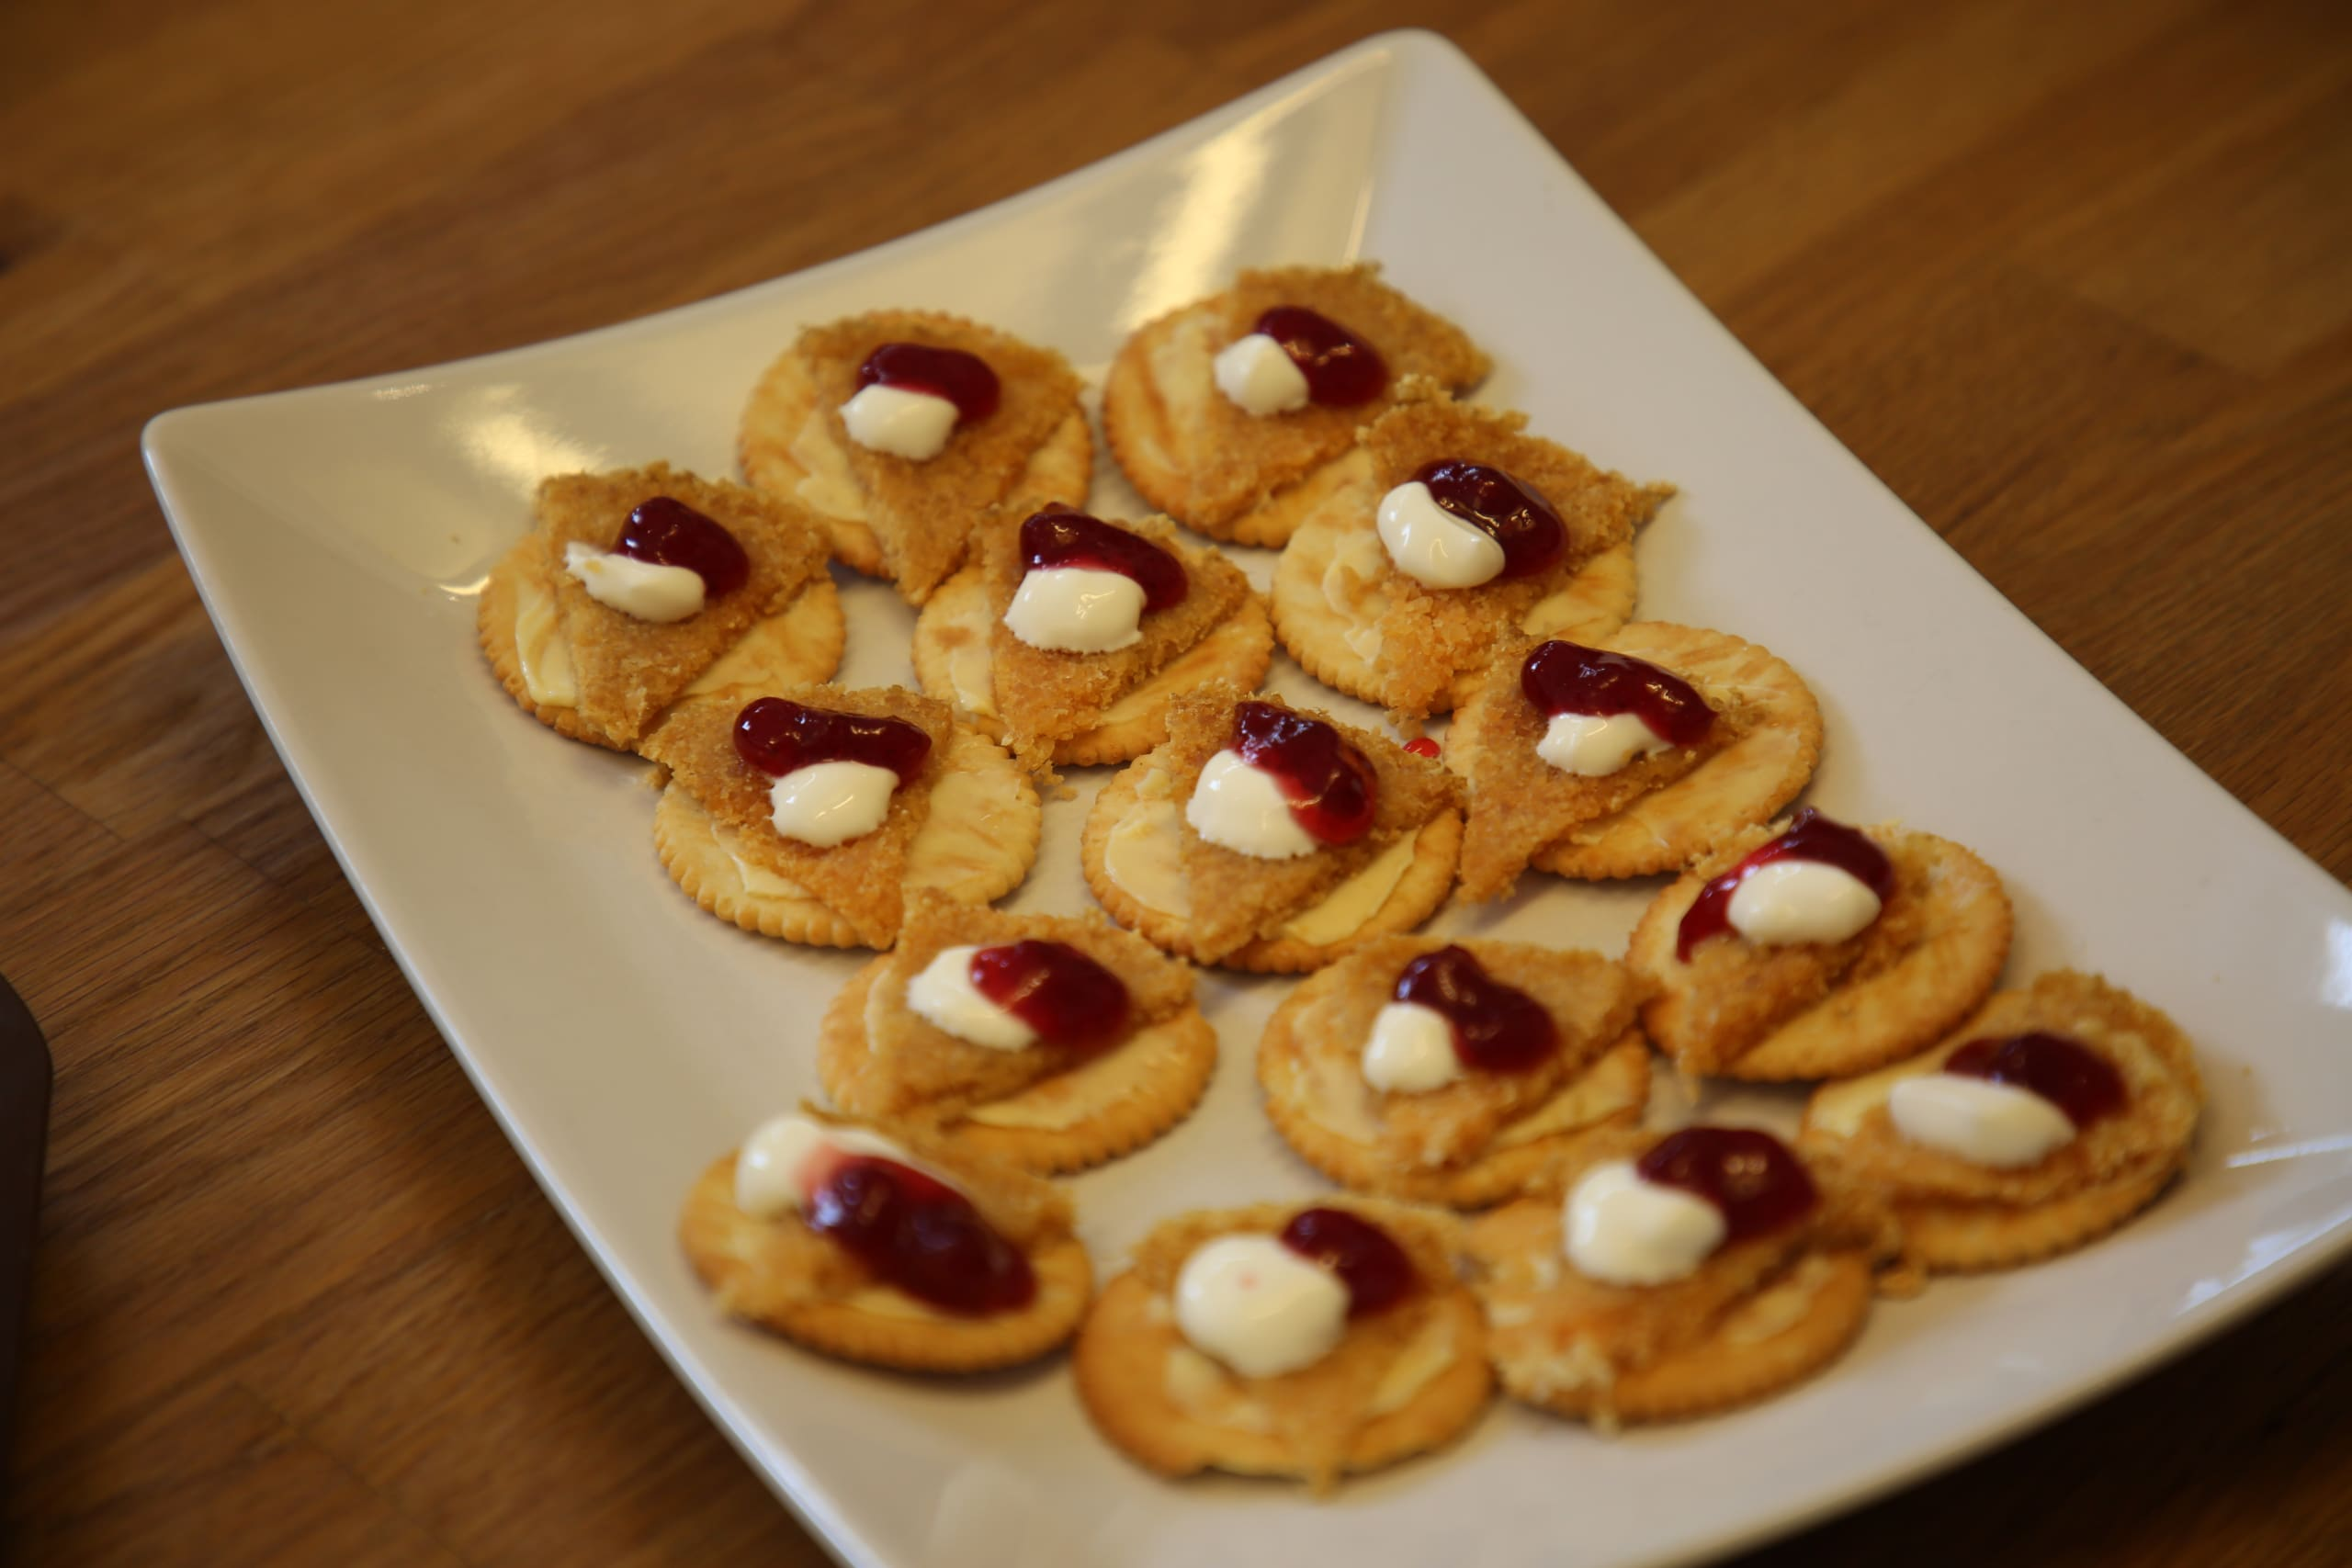 A plate of crackers with locally produced gamalost topped with jam in Vik in Sogn.